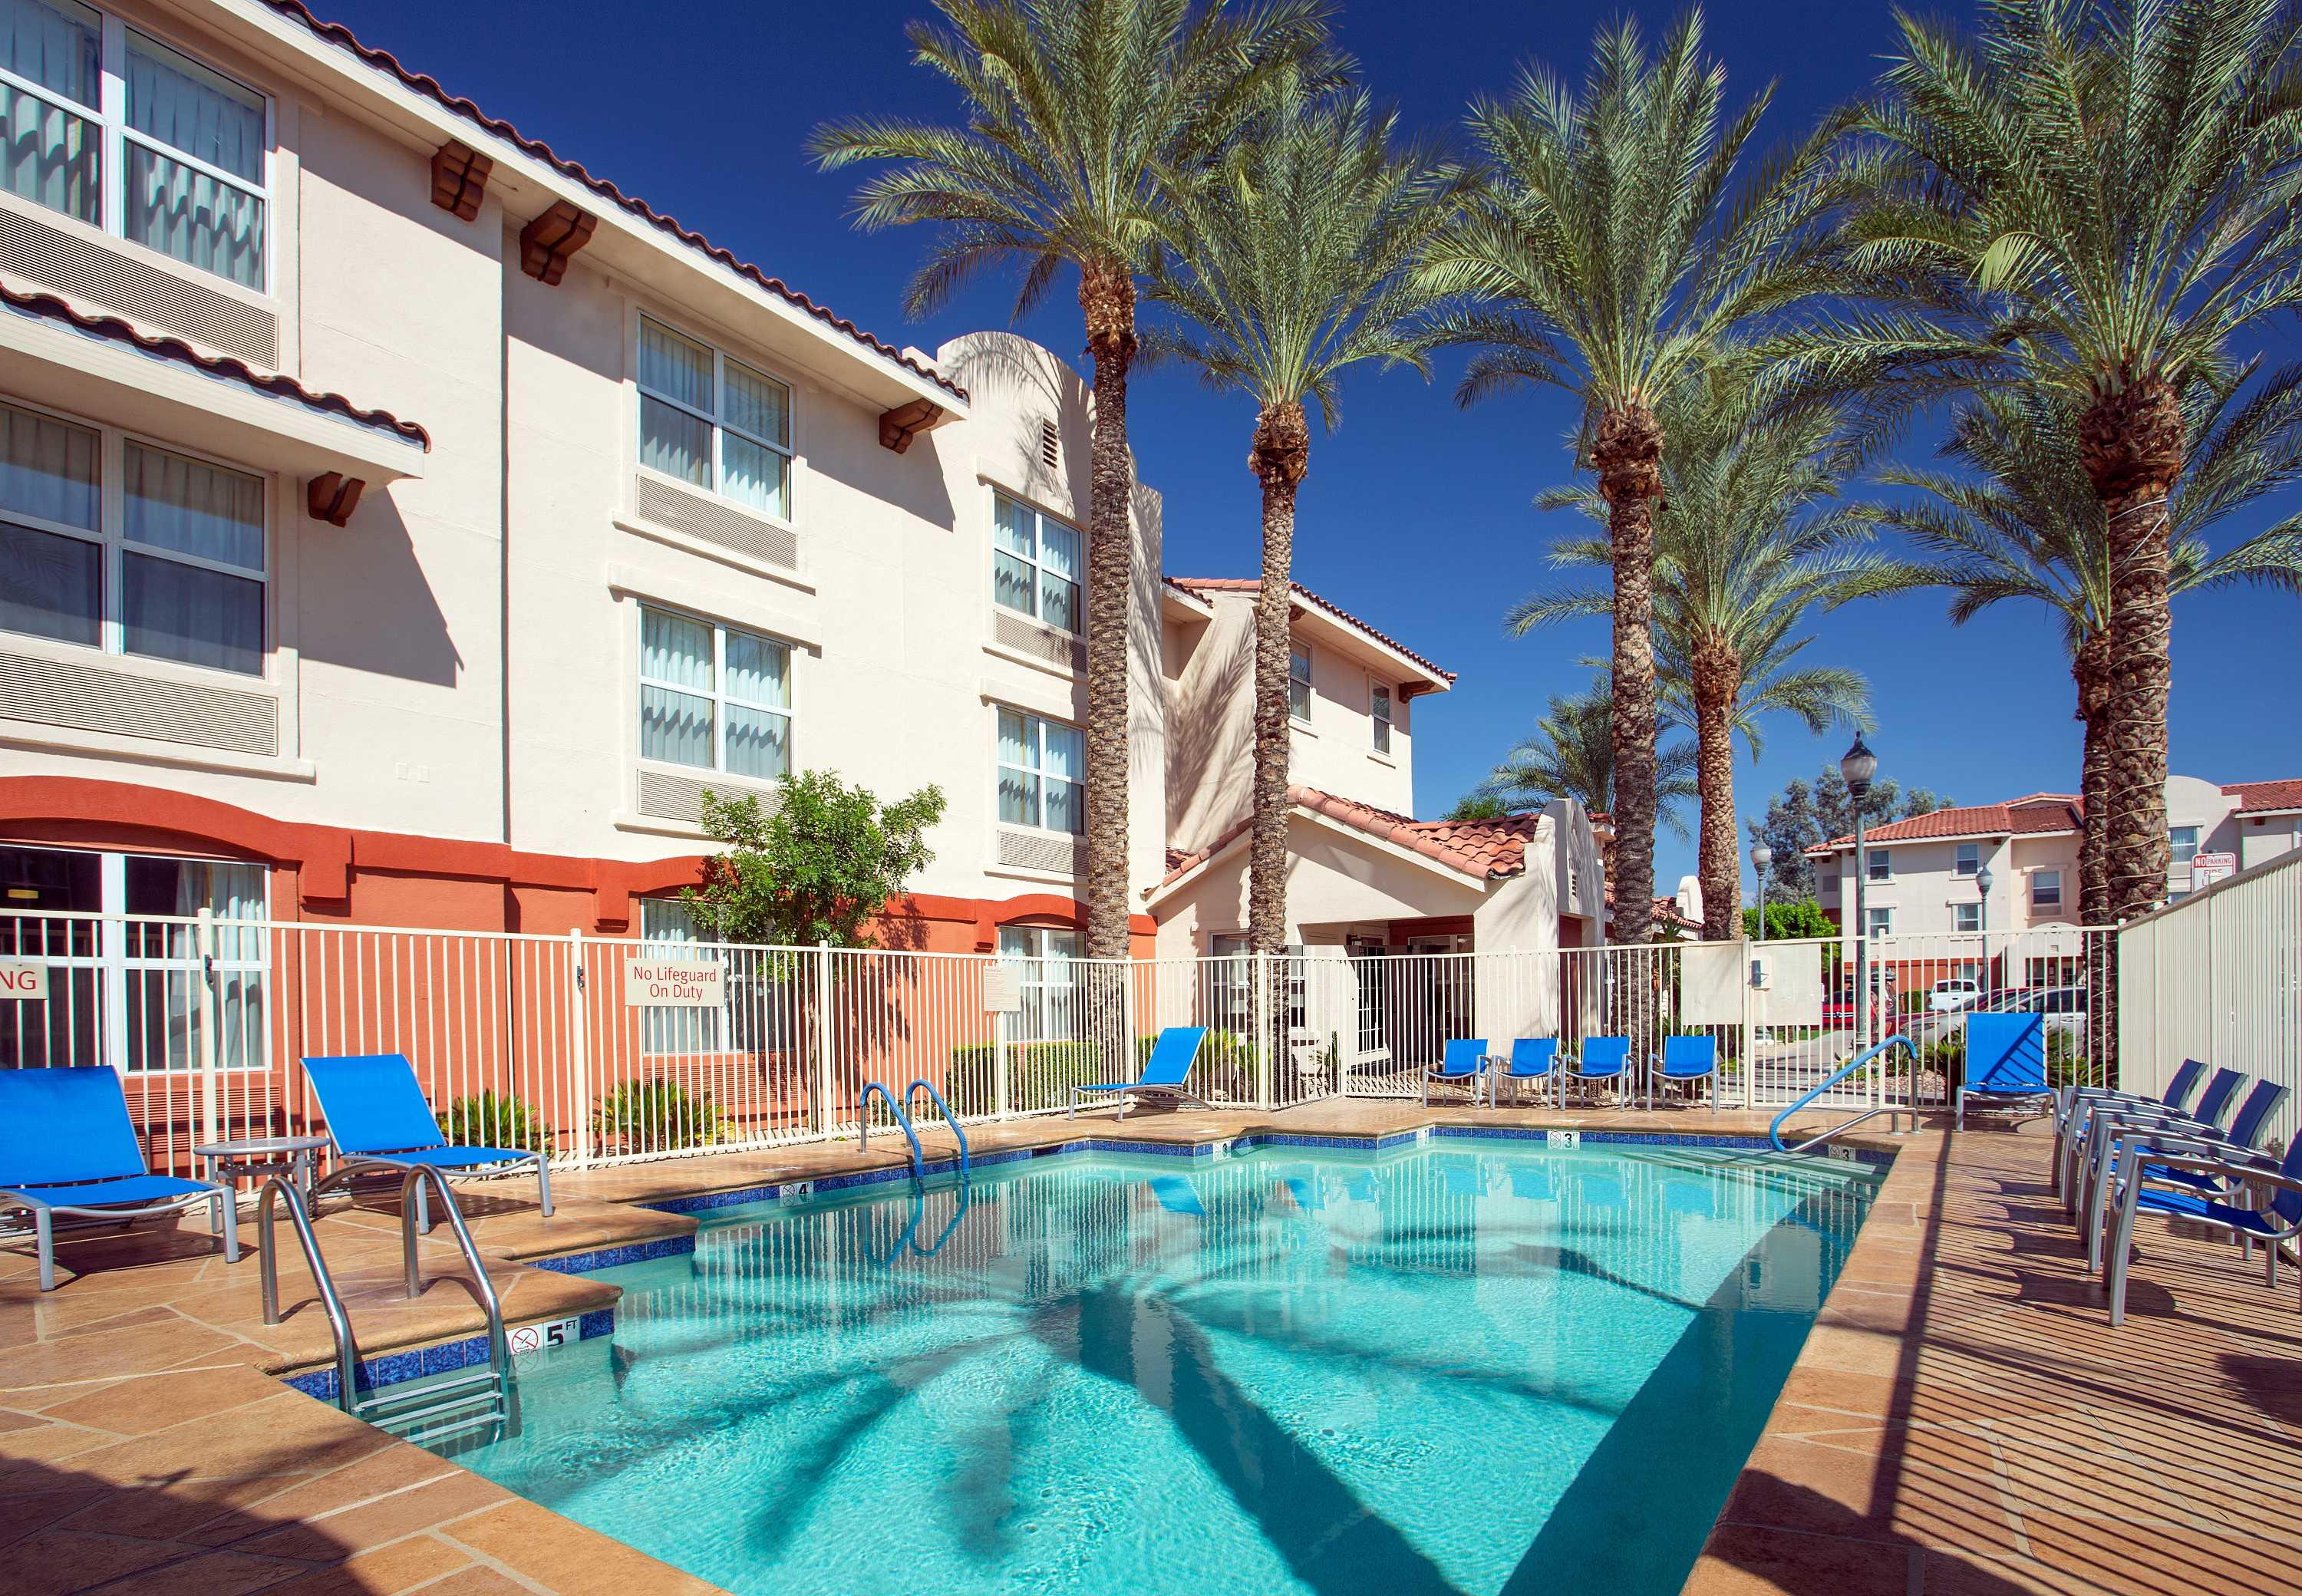 TownePlace Suites by Marriott Scottsdale image 8